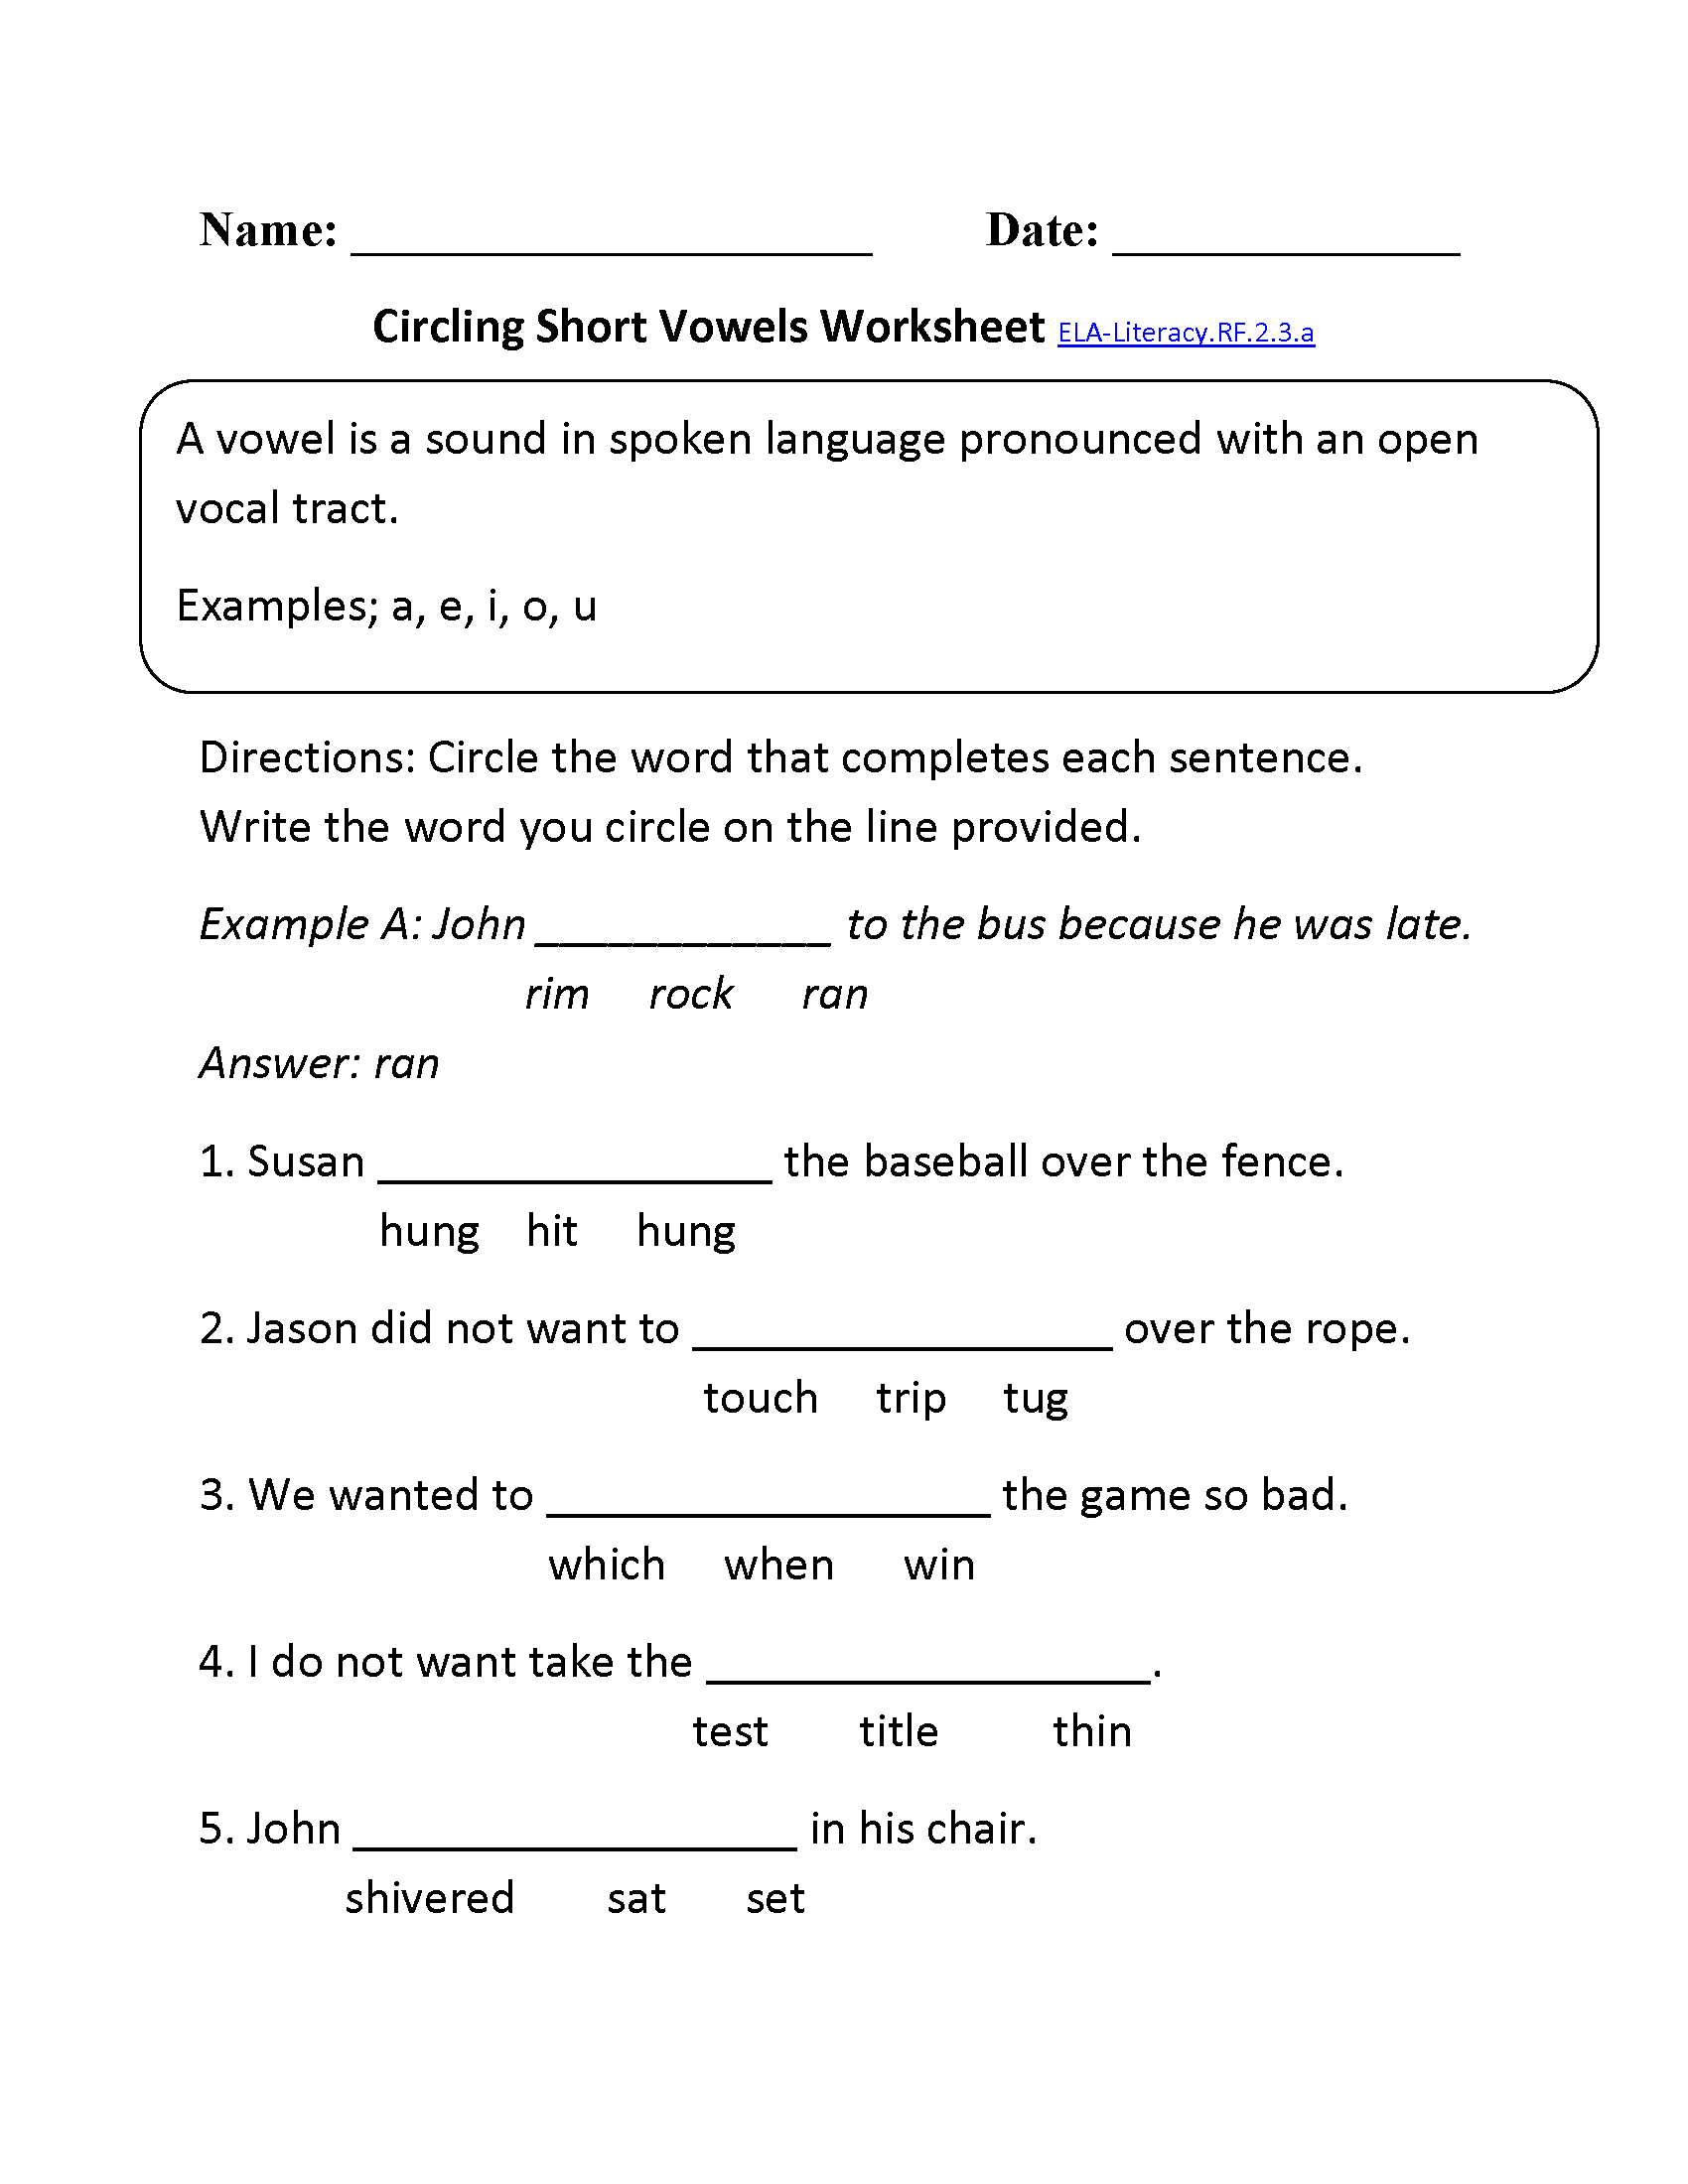 Worksheets 2nd Grade Phonics Worksheets Free 2nd grade common core reading foundational skills worksheets short vowels ela literacy rf 2 3 a skills